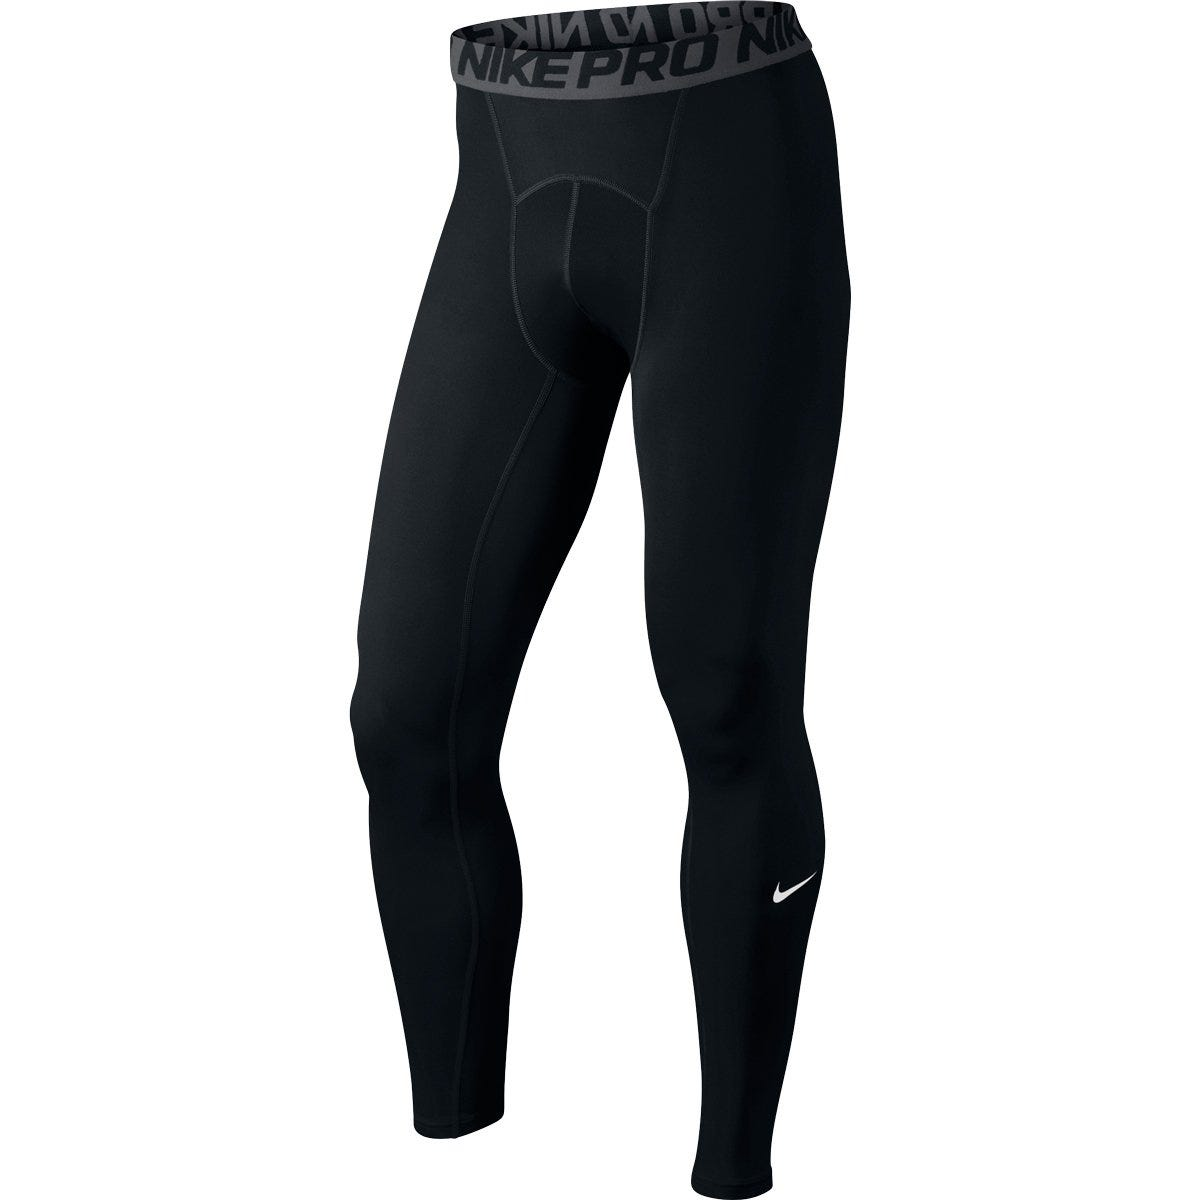 Nike Pro Cool Senior Compression Tights